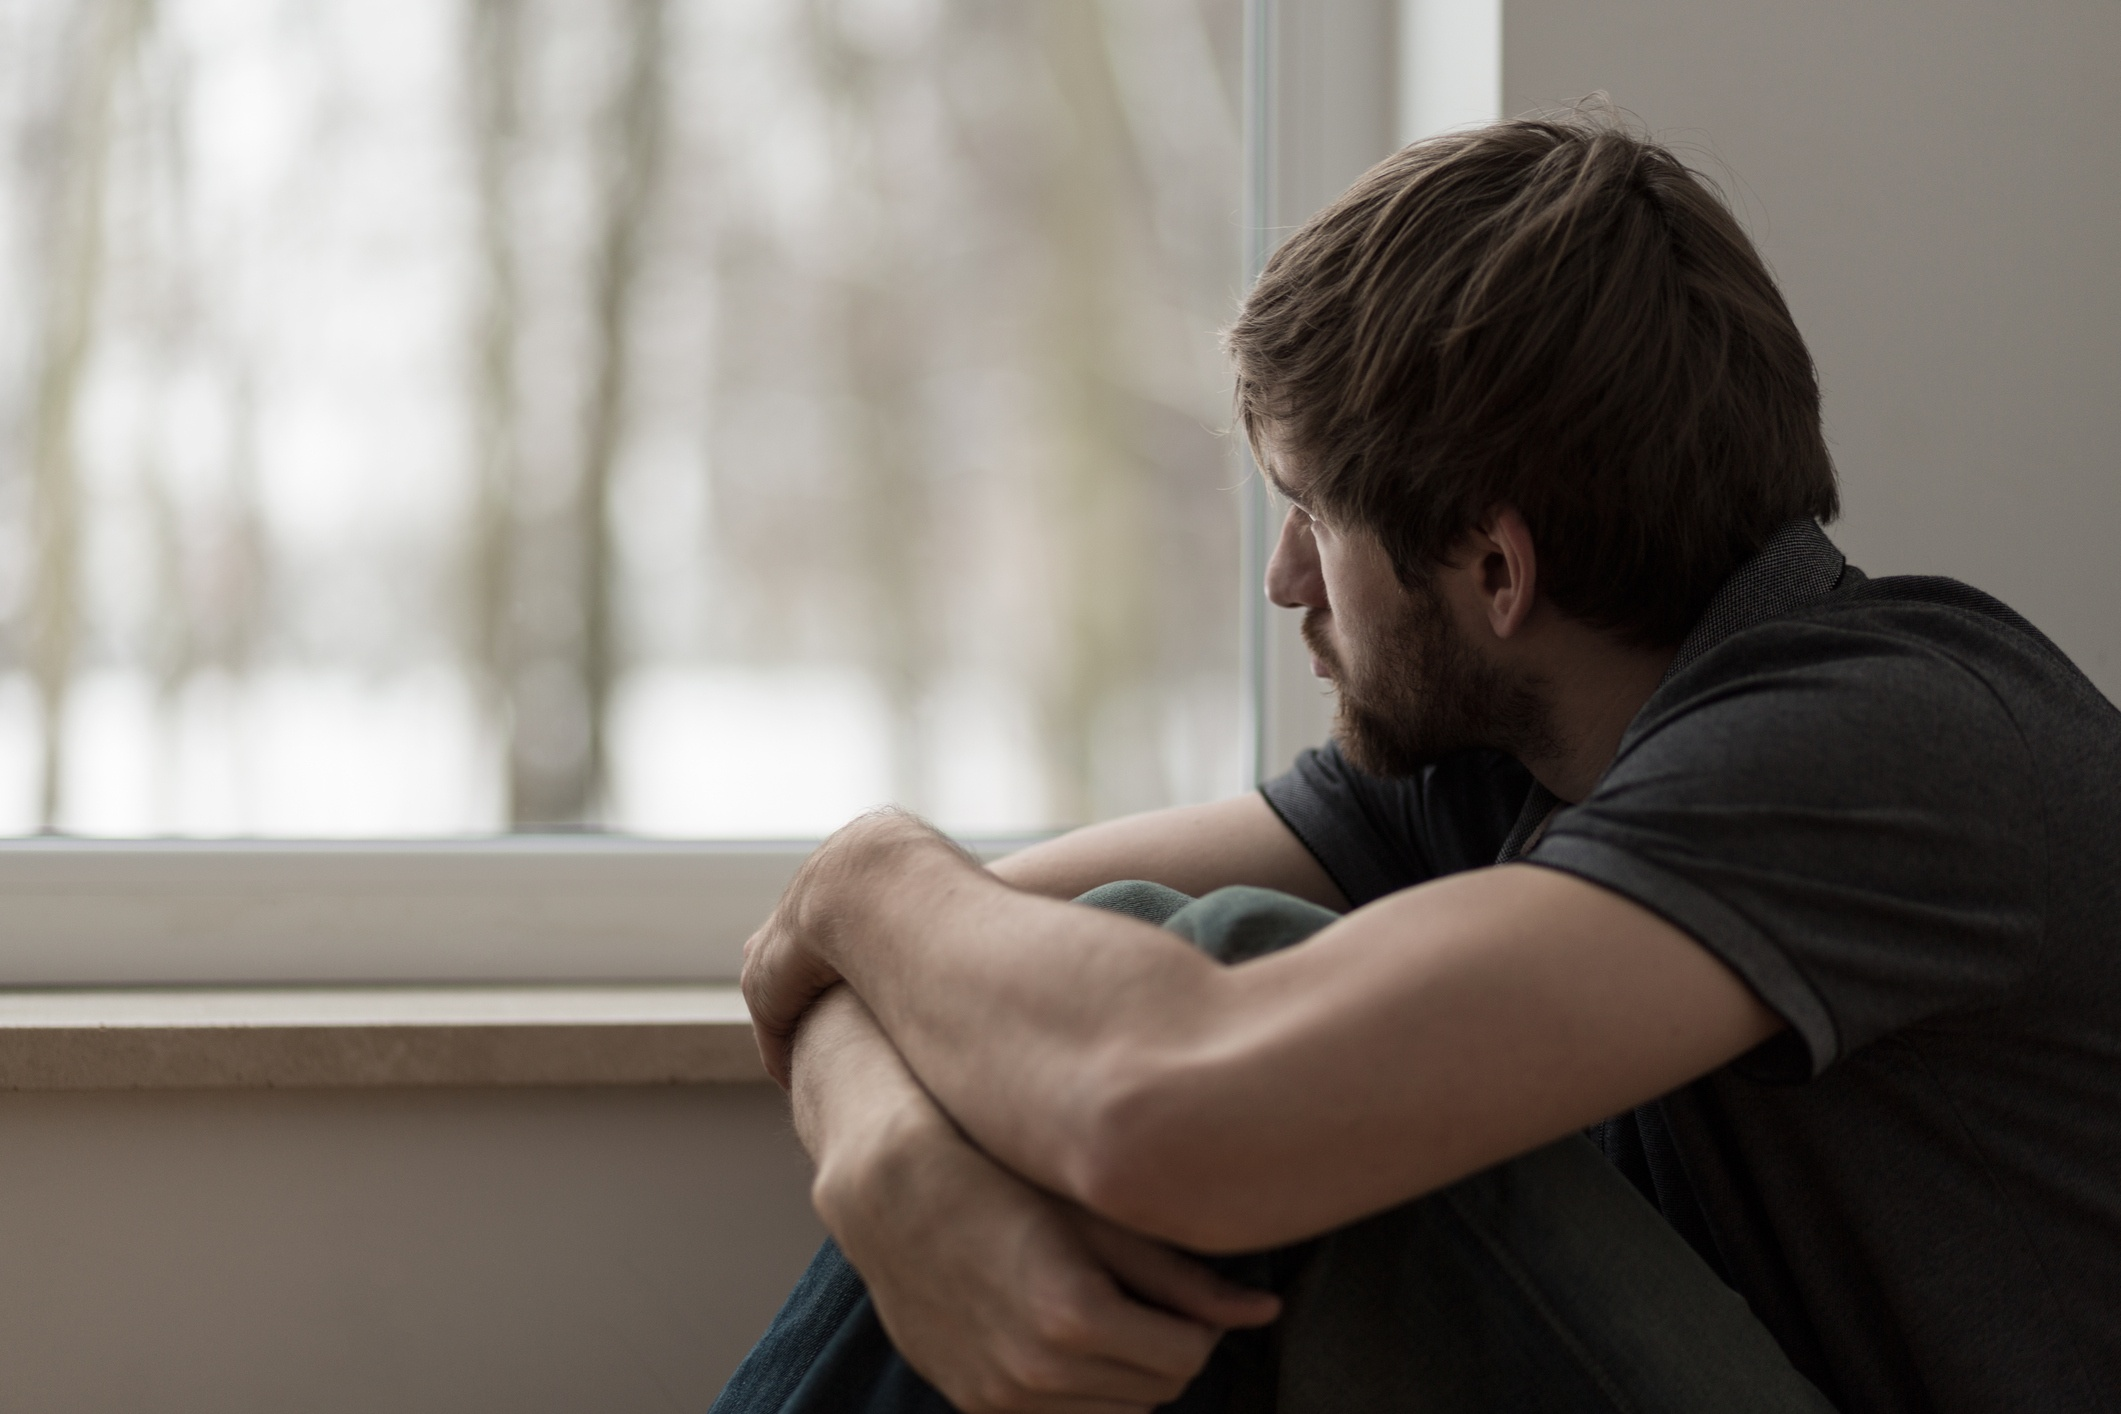 Young man with depression looking out a window